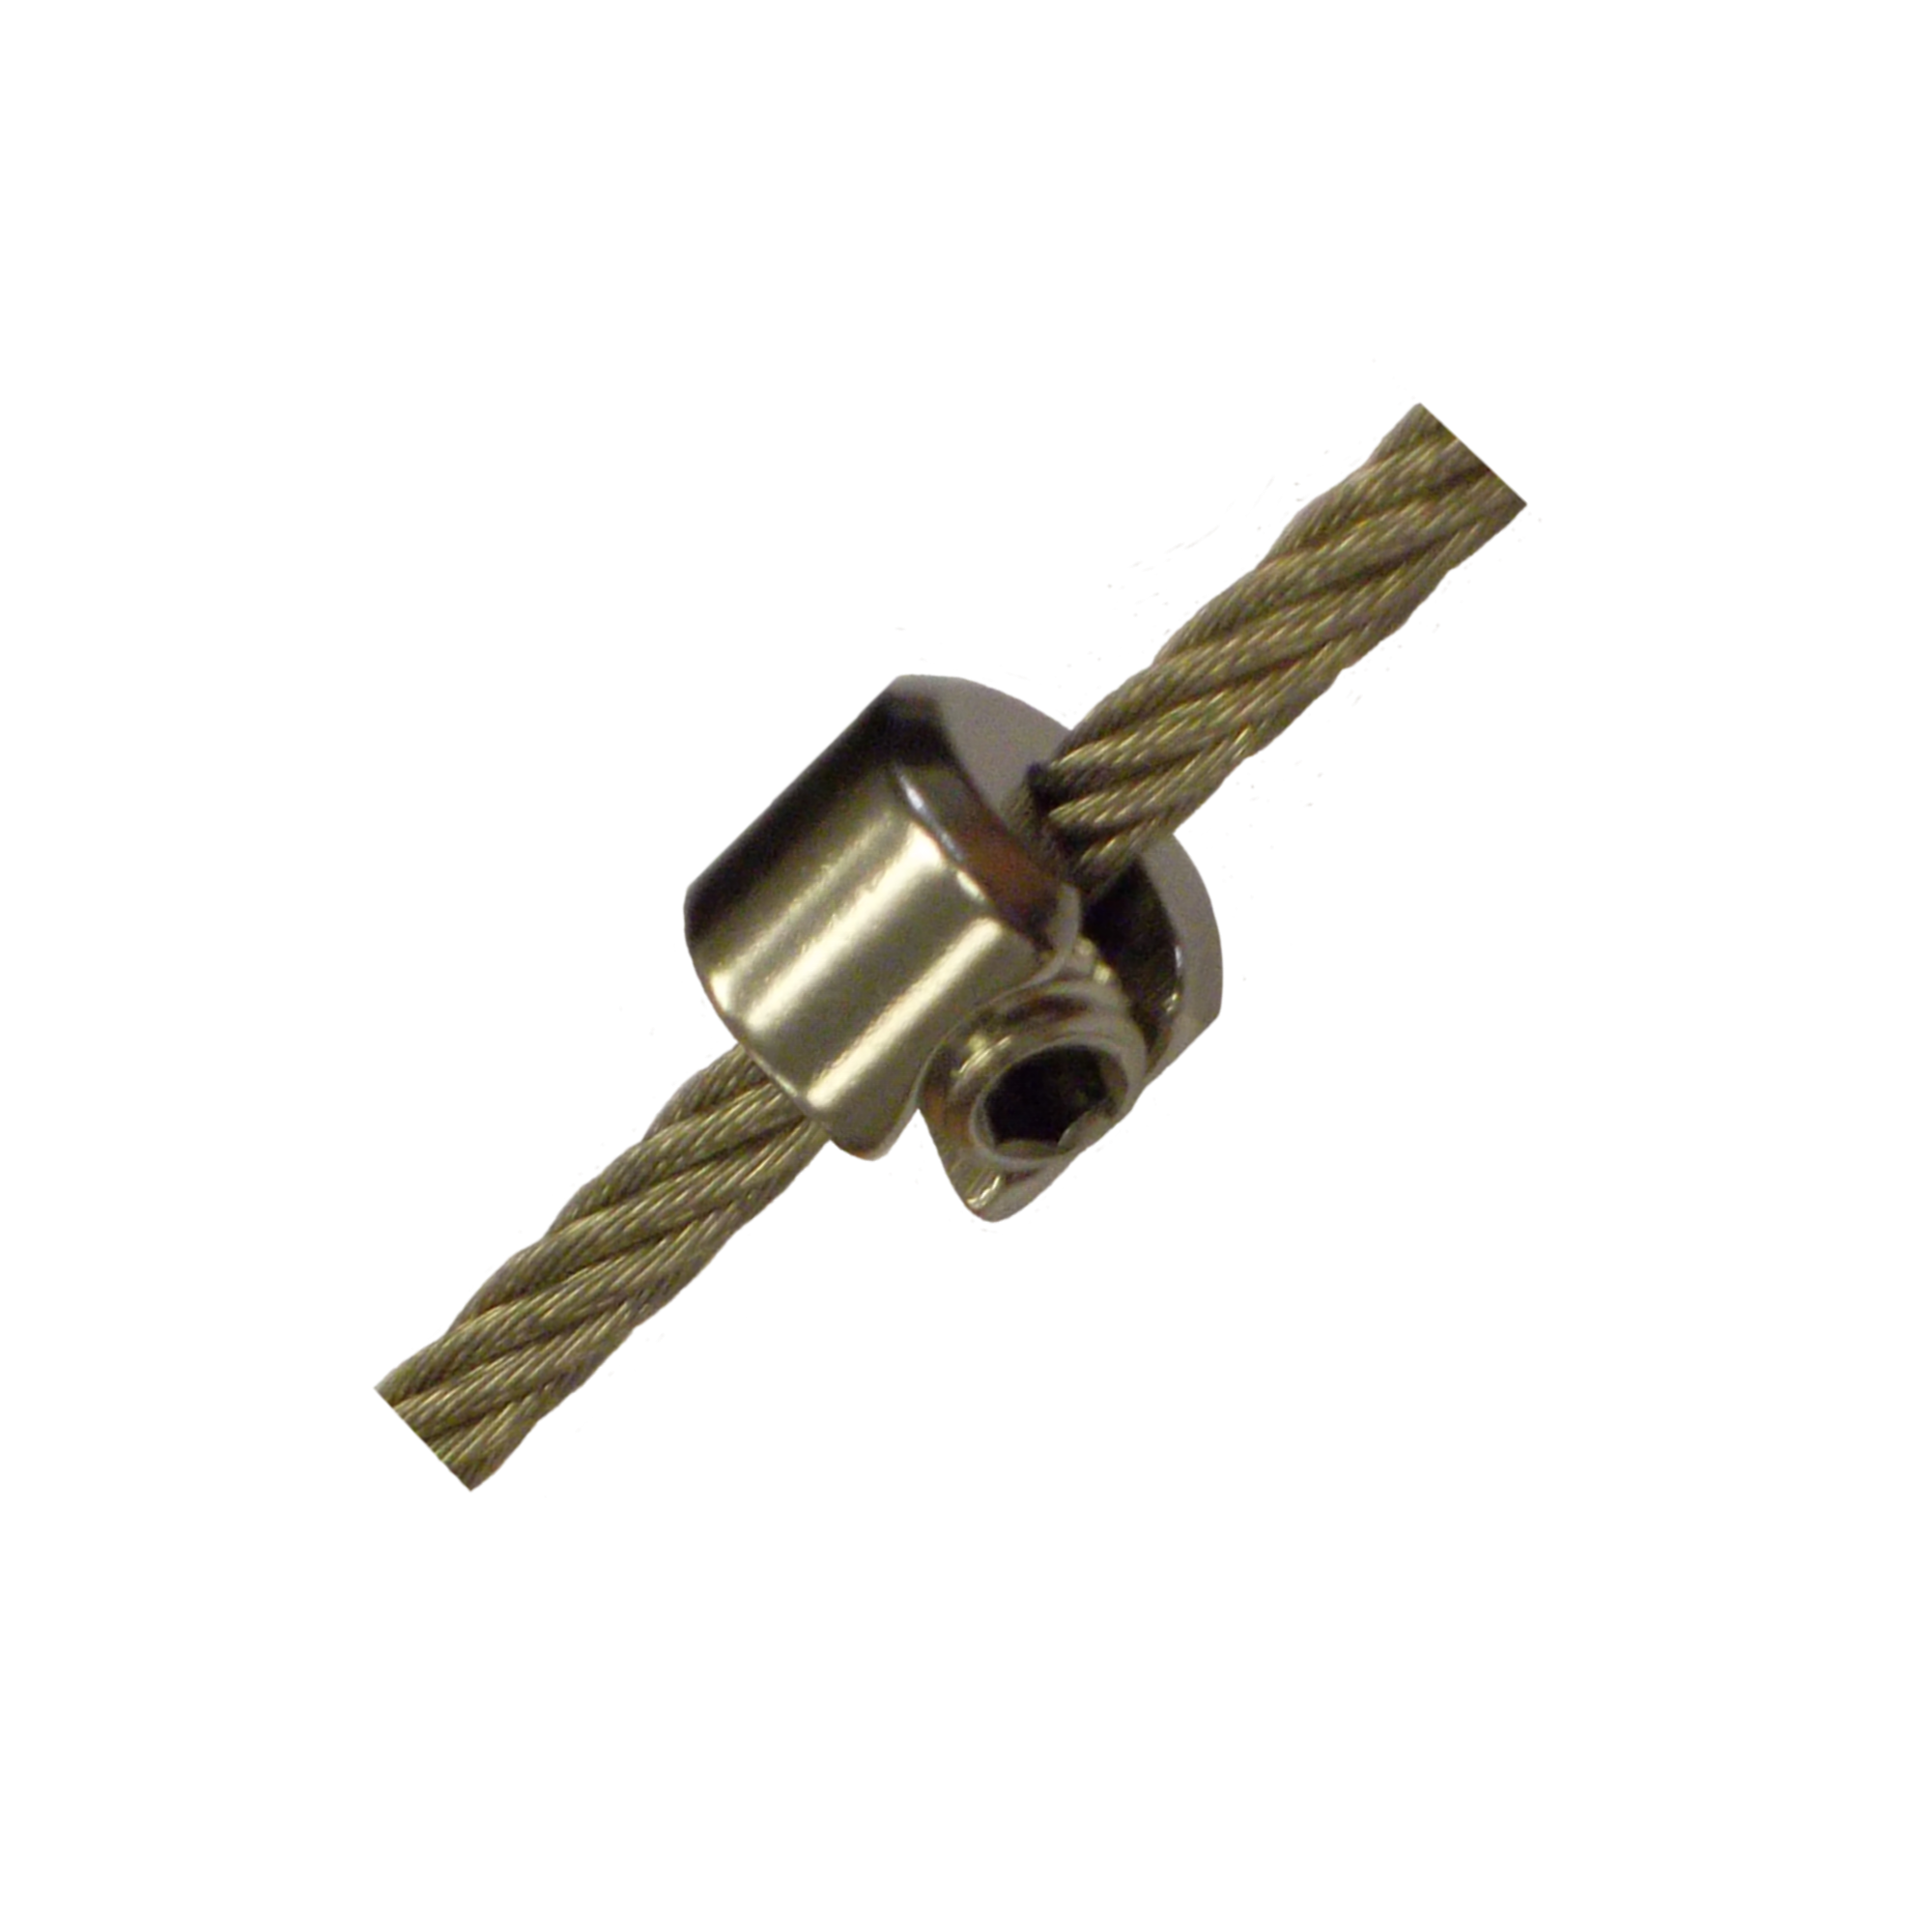 M10 Stainless Steel DIY Stop Fitting for 5mm & 6mm Cable